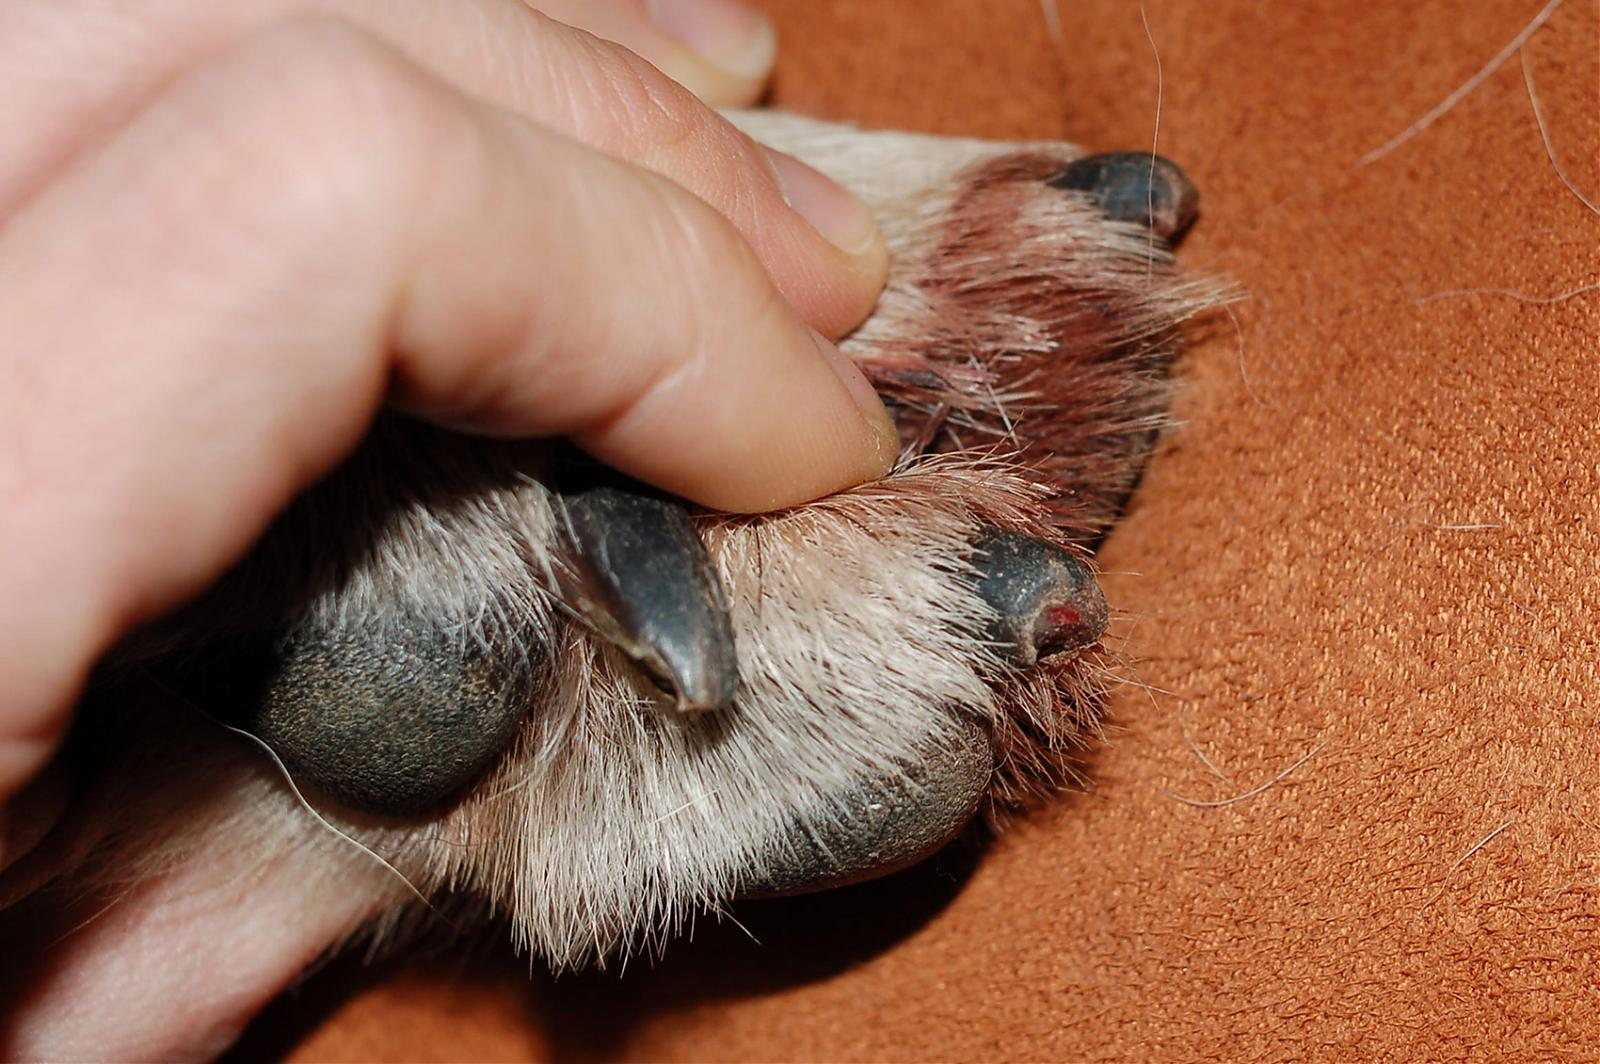 Nubby Bloody Nails From Dragging Her Feet Doberman Forum